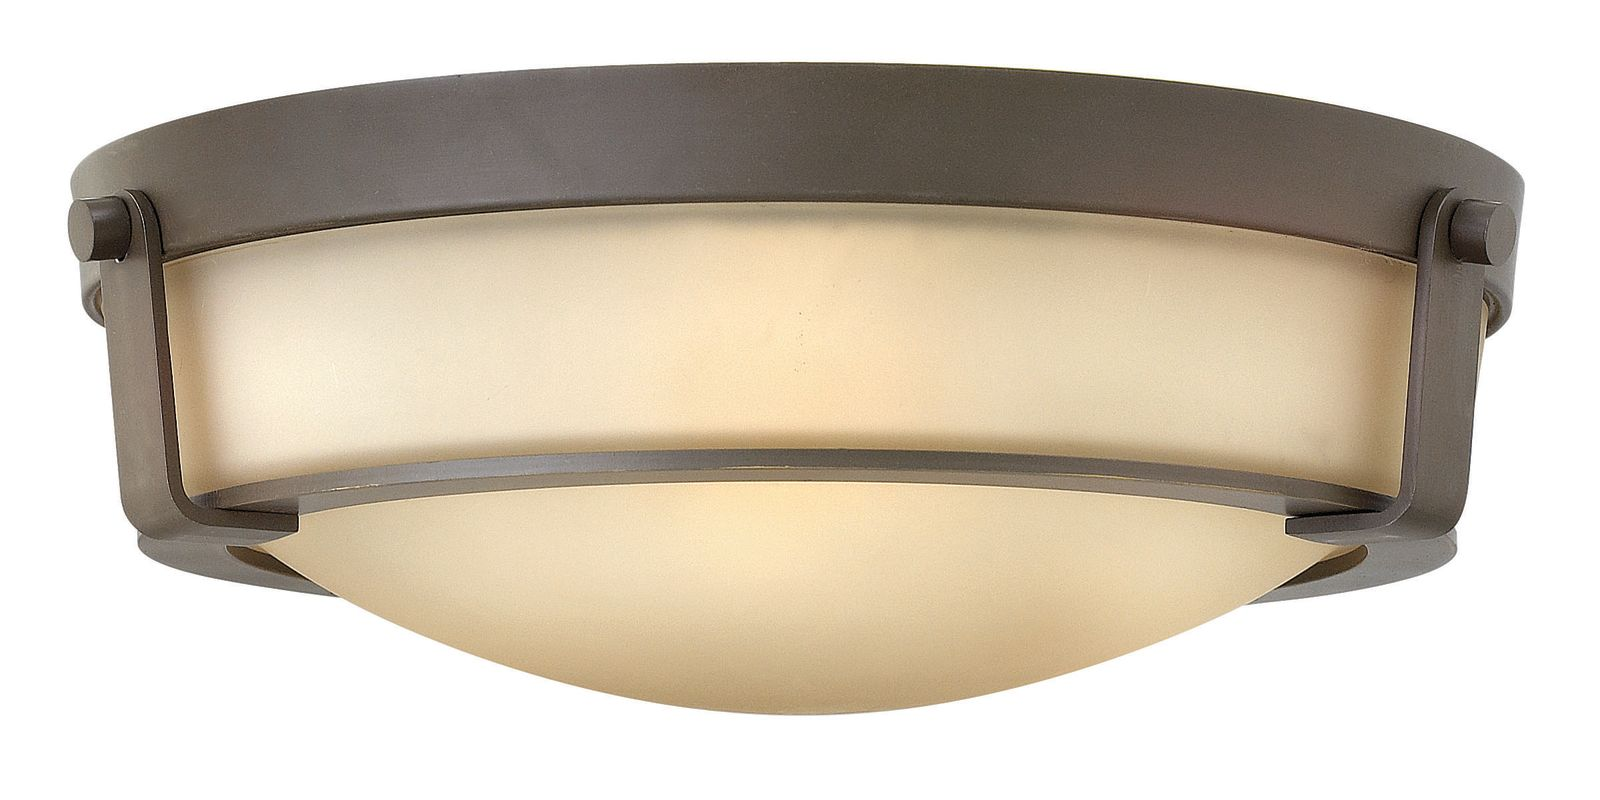 Hinkley Lighting 3225-GU24 3 Light Title 24 Fluorescent Flush Mount Sale $349.00 ITEM#: 2635209 MODEL# :3225OB-GU24 UPC#: 640665322545 :